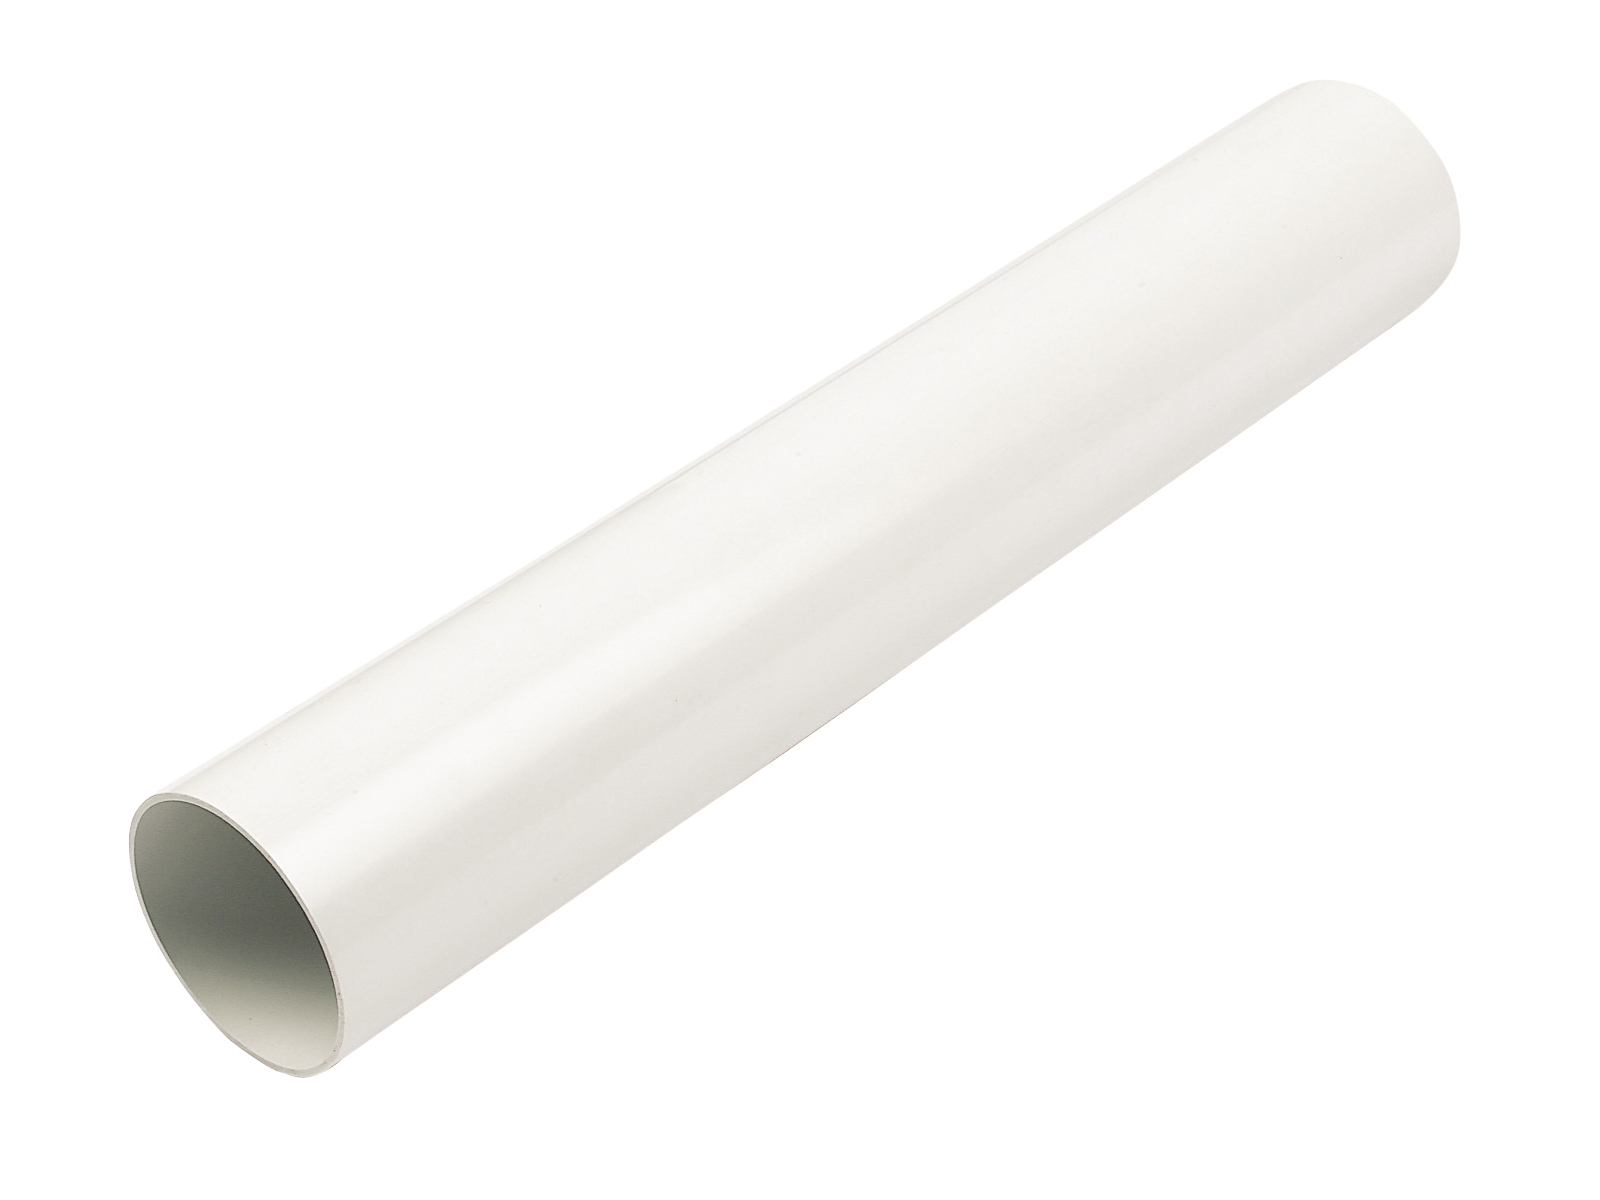 FLOPLAST 68MM ROUND DOWNPIPE - RP5.5 PIPE 5.5M - WHITE